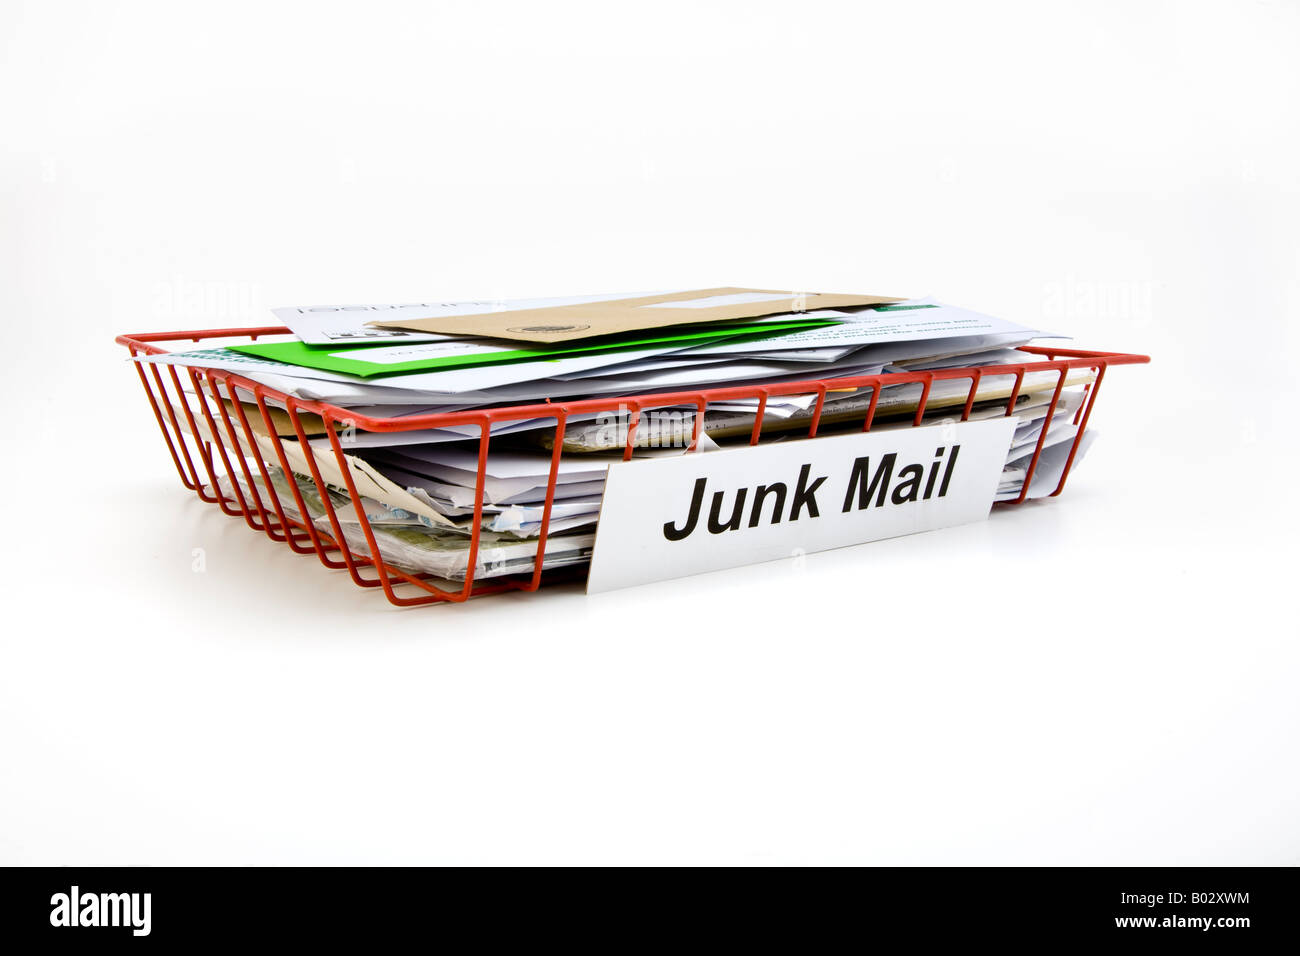 red wire mesh office post tray full of junk mail Stock Photo